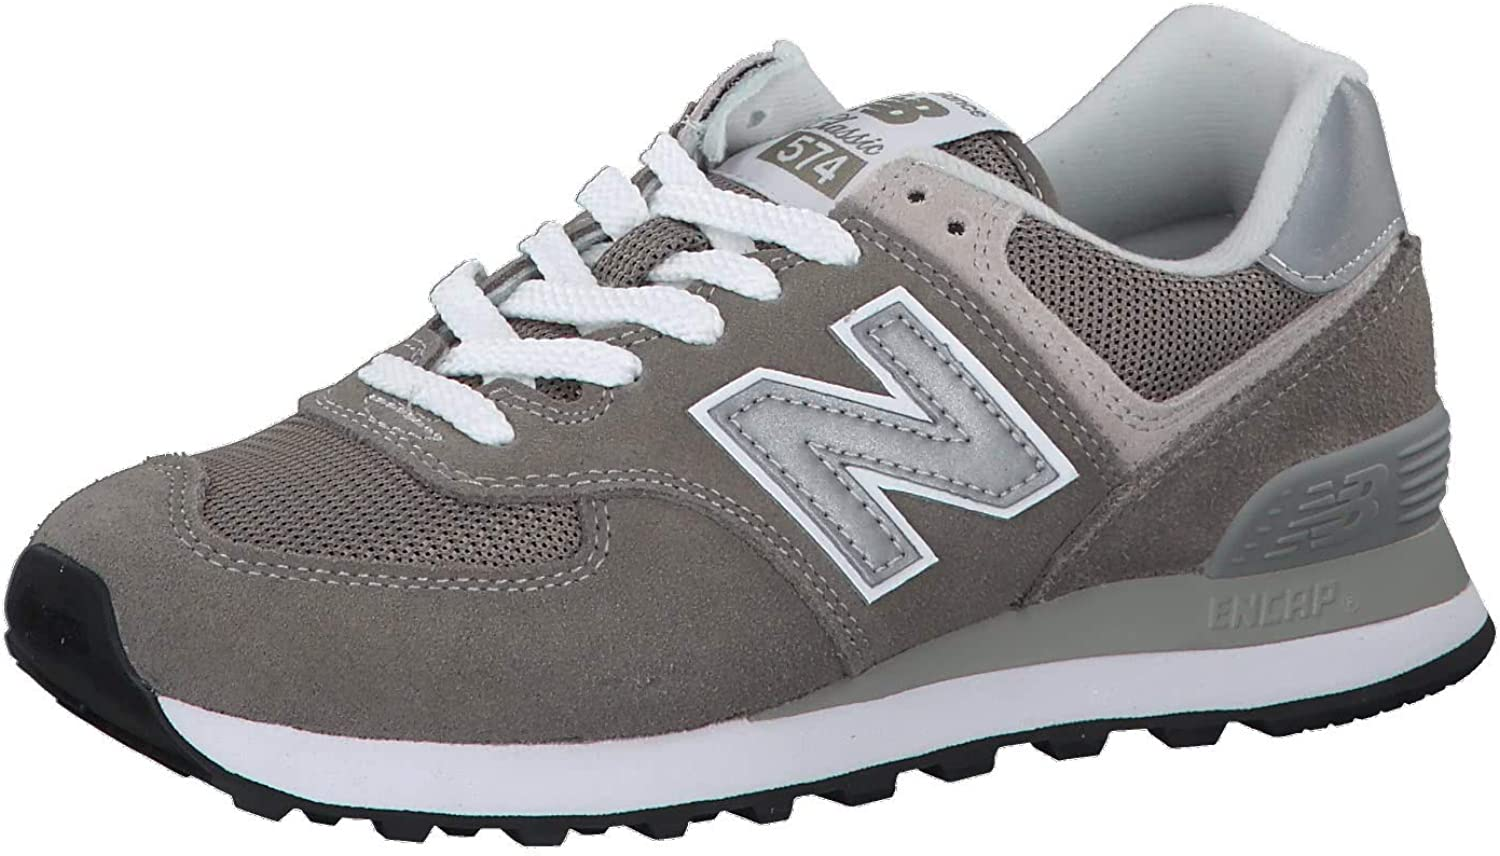 New Balance Women's 574 New England Pack Fashion Sneaker